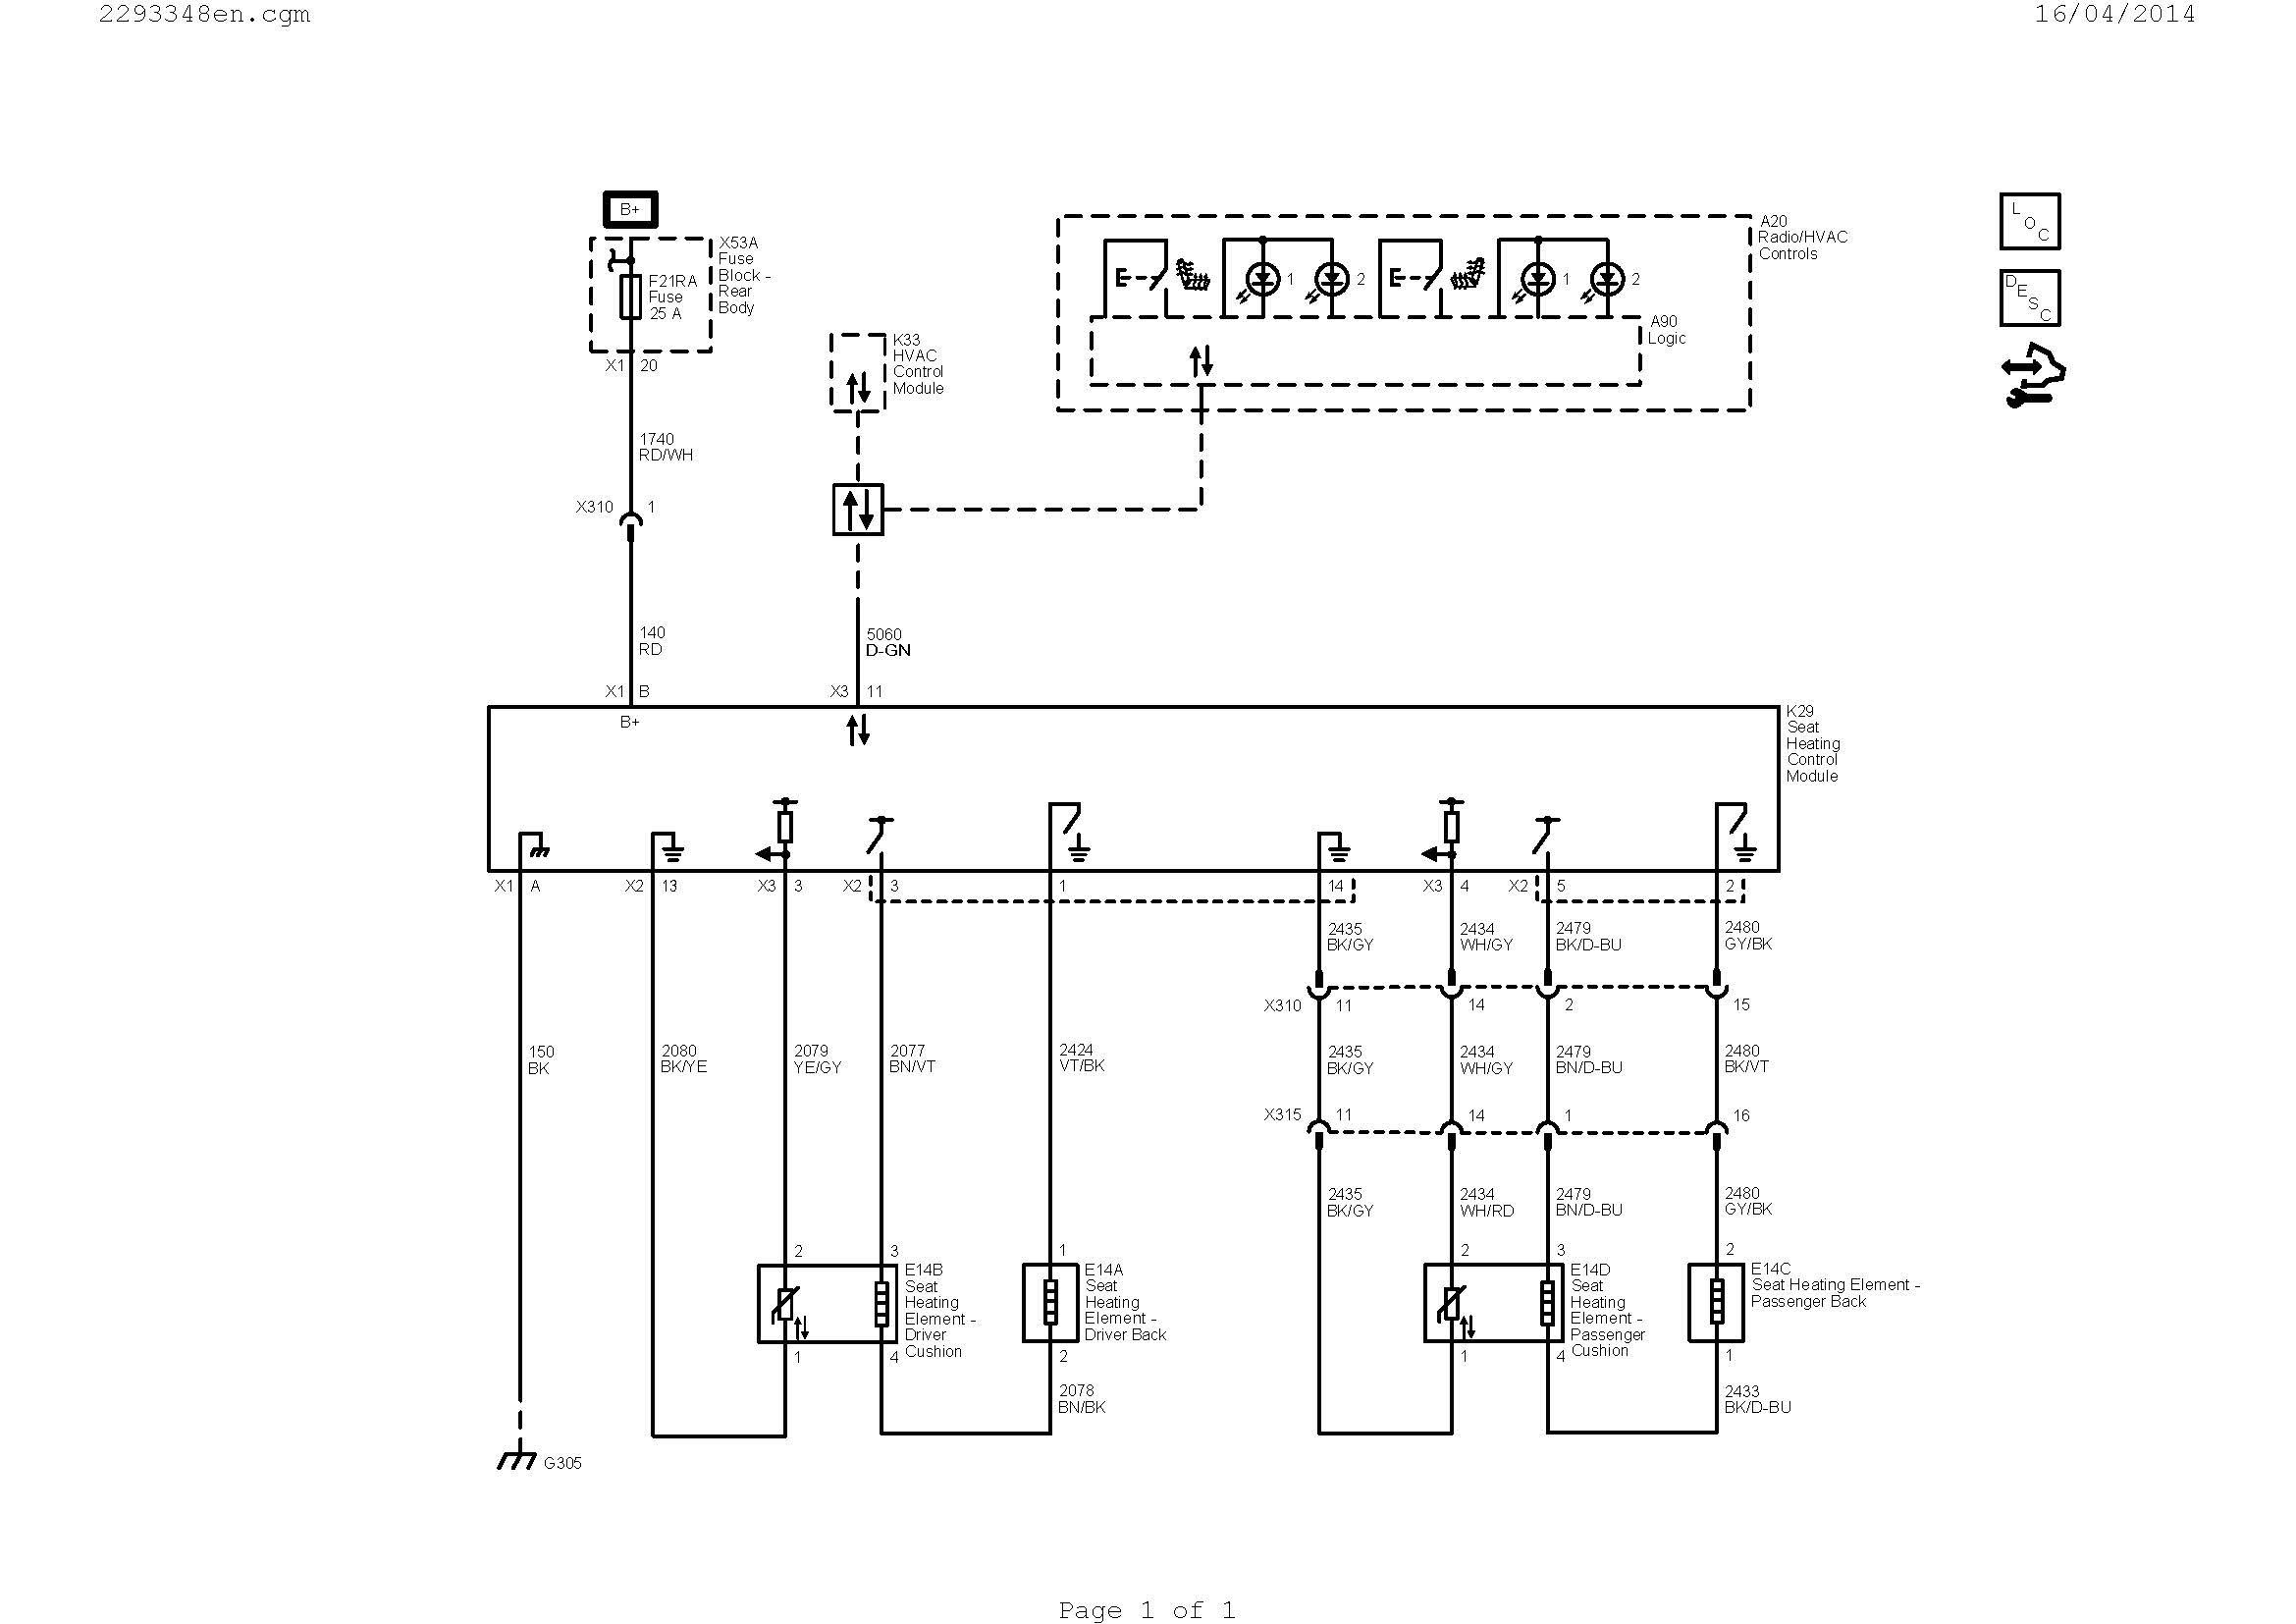 central ac wiring diagram    central    air conditioner    wiring       diagram    free    wiring       diagram        central    air conditioner    wiring       diagram    free    wiring       diagram